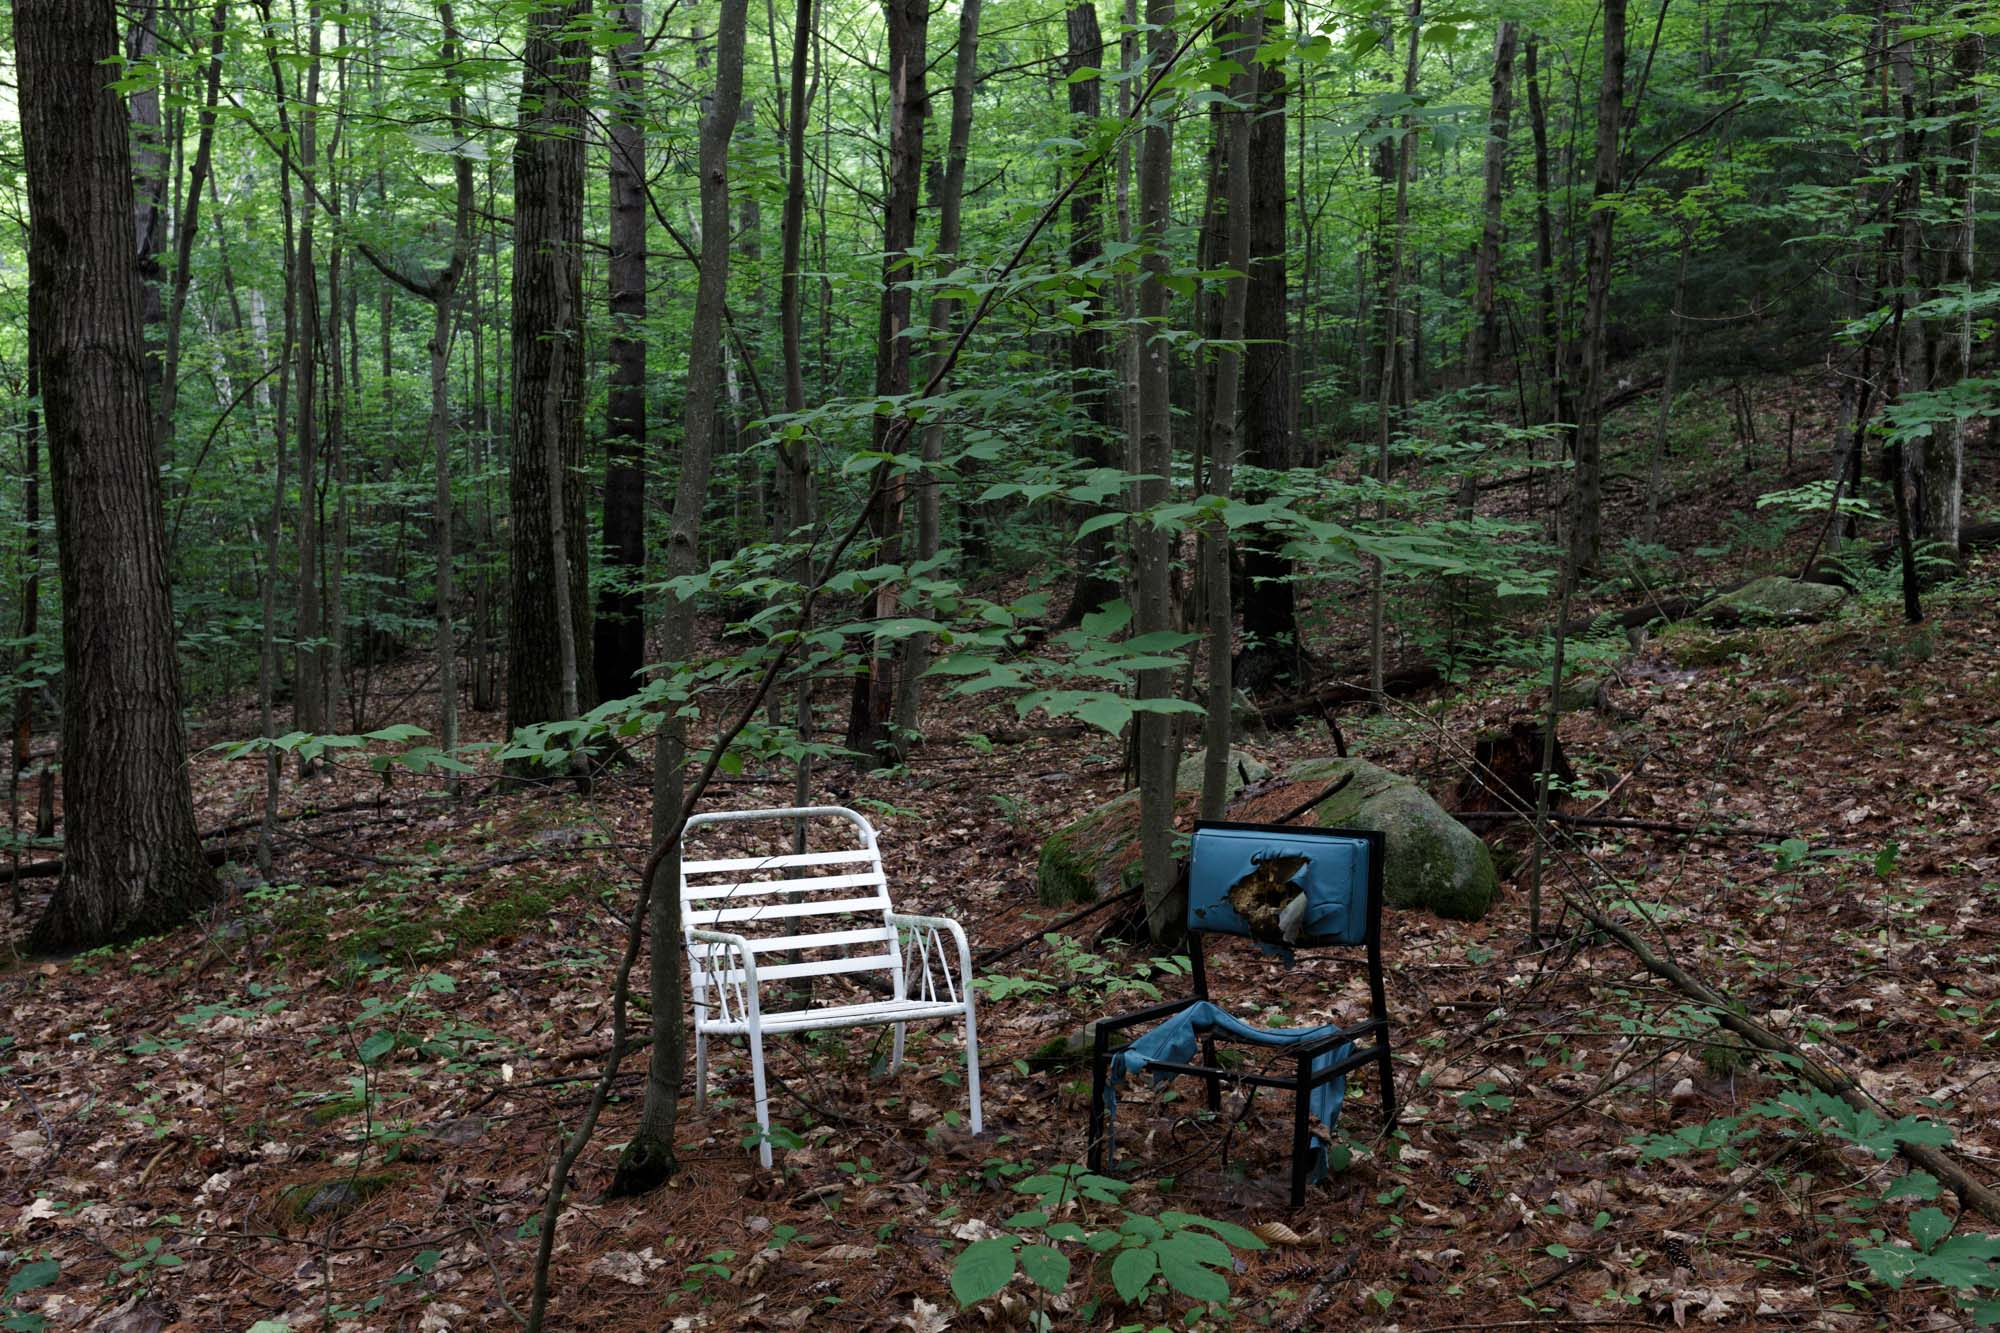 Two Chair in the Woods